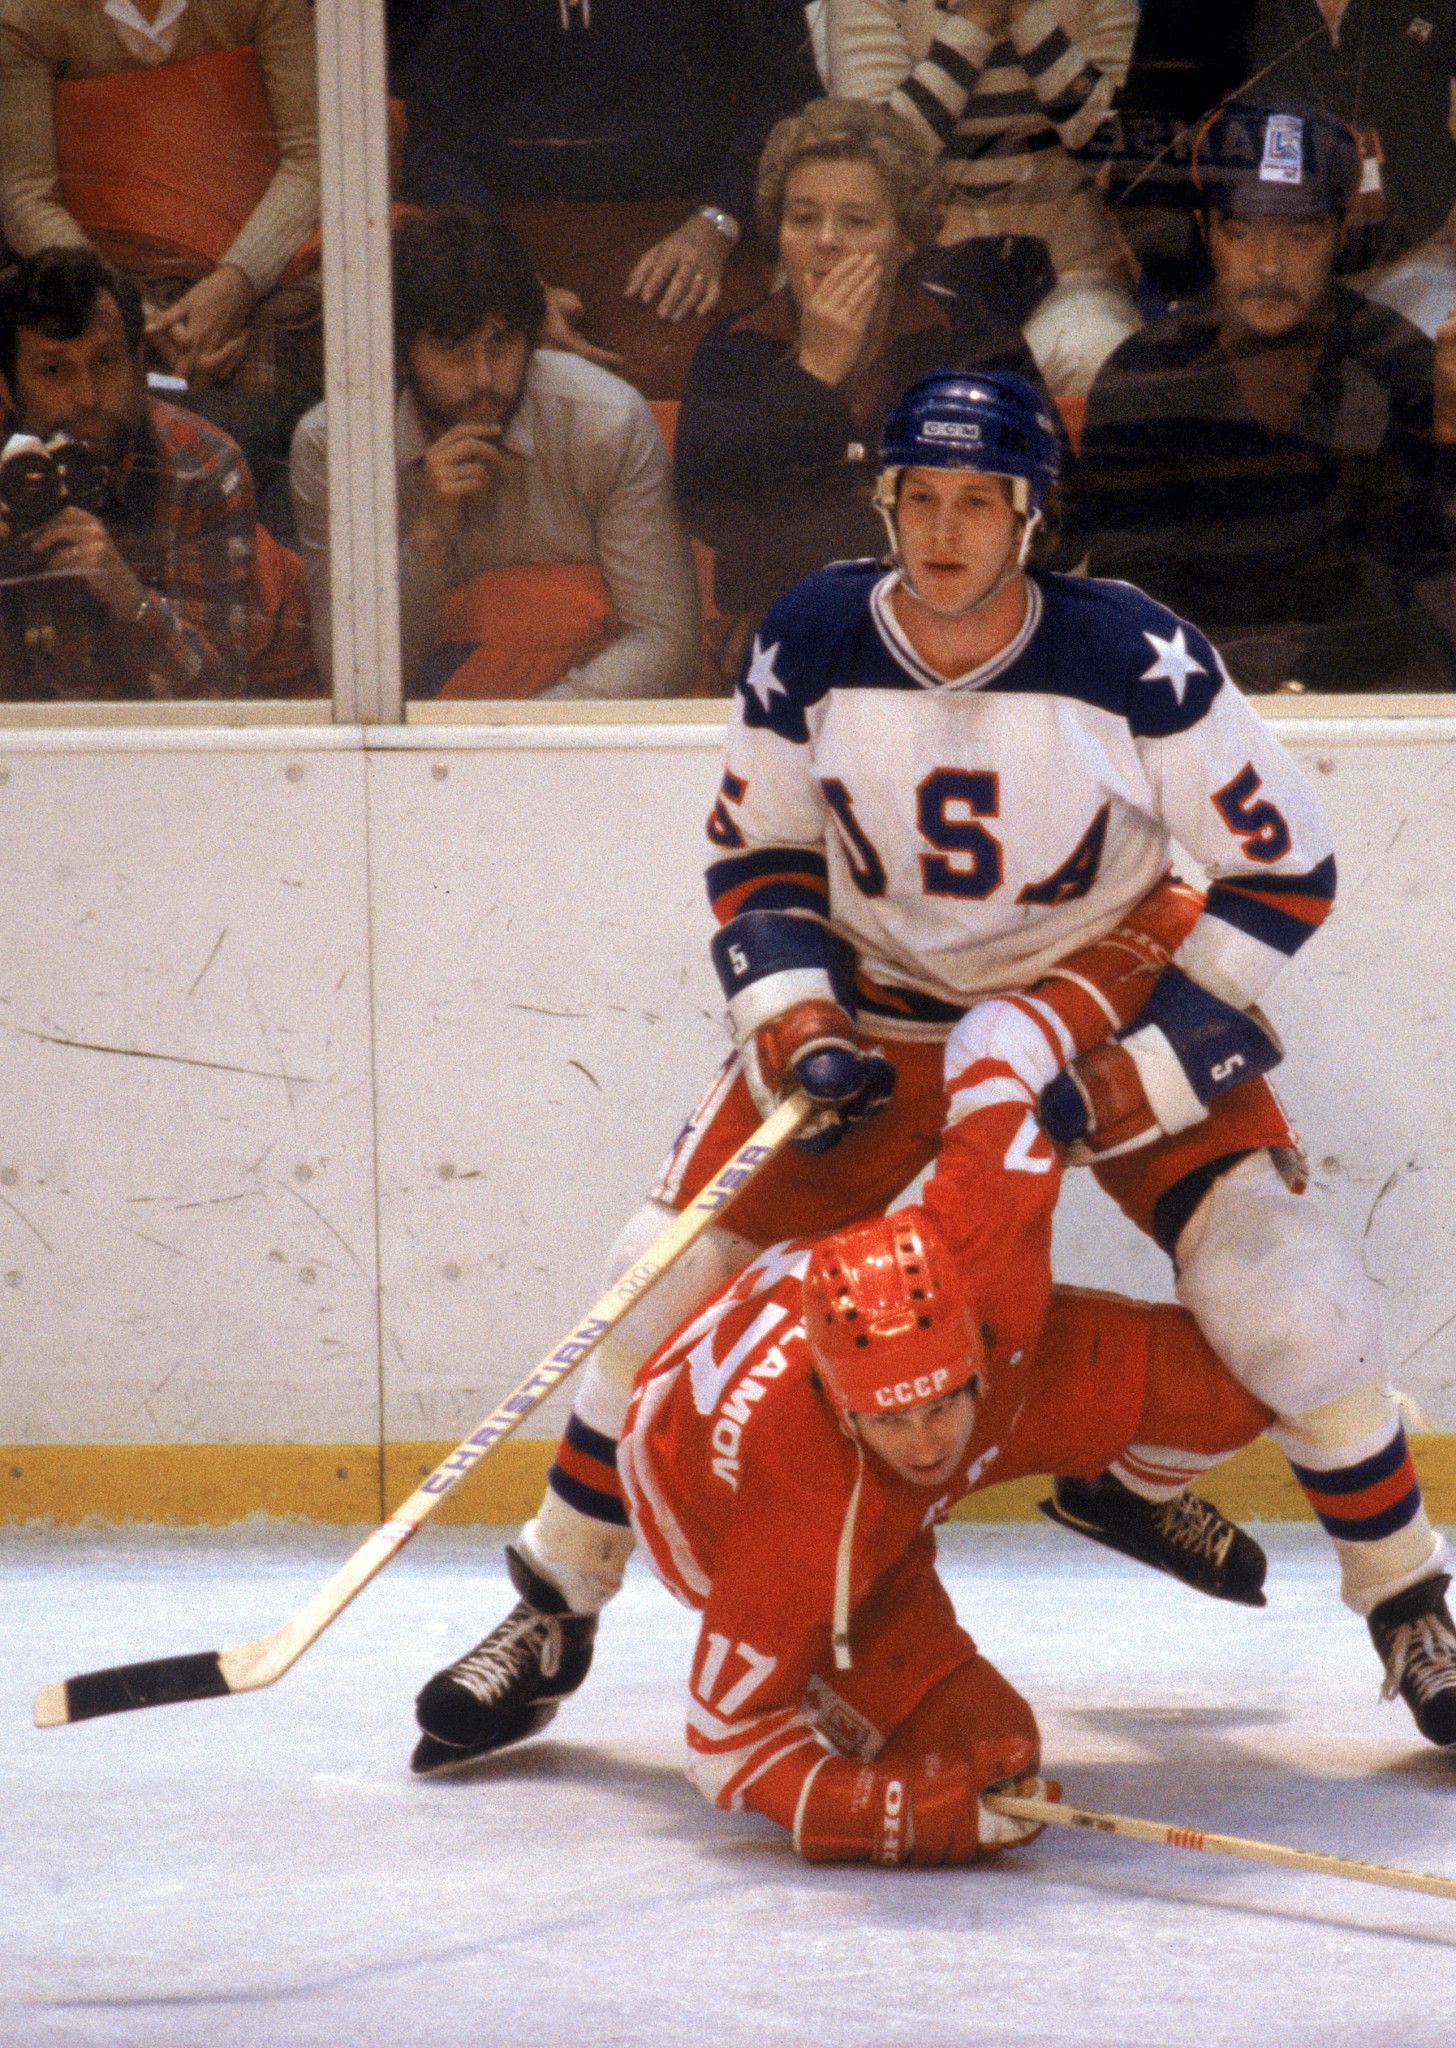 Mike Ramsey of the US and Valeri Kharlamov of the Soviet Union pictured during the home side's historic 4-3 win in the first medal-round match at the 1980 Lake Placid Winter Olympics ©Getty Images